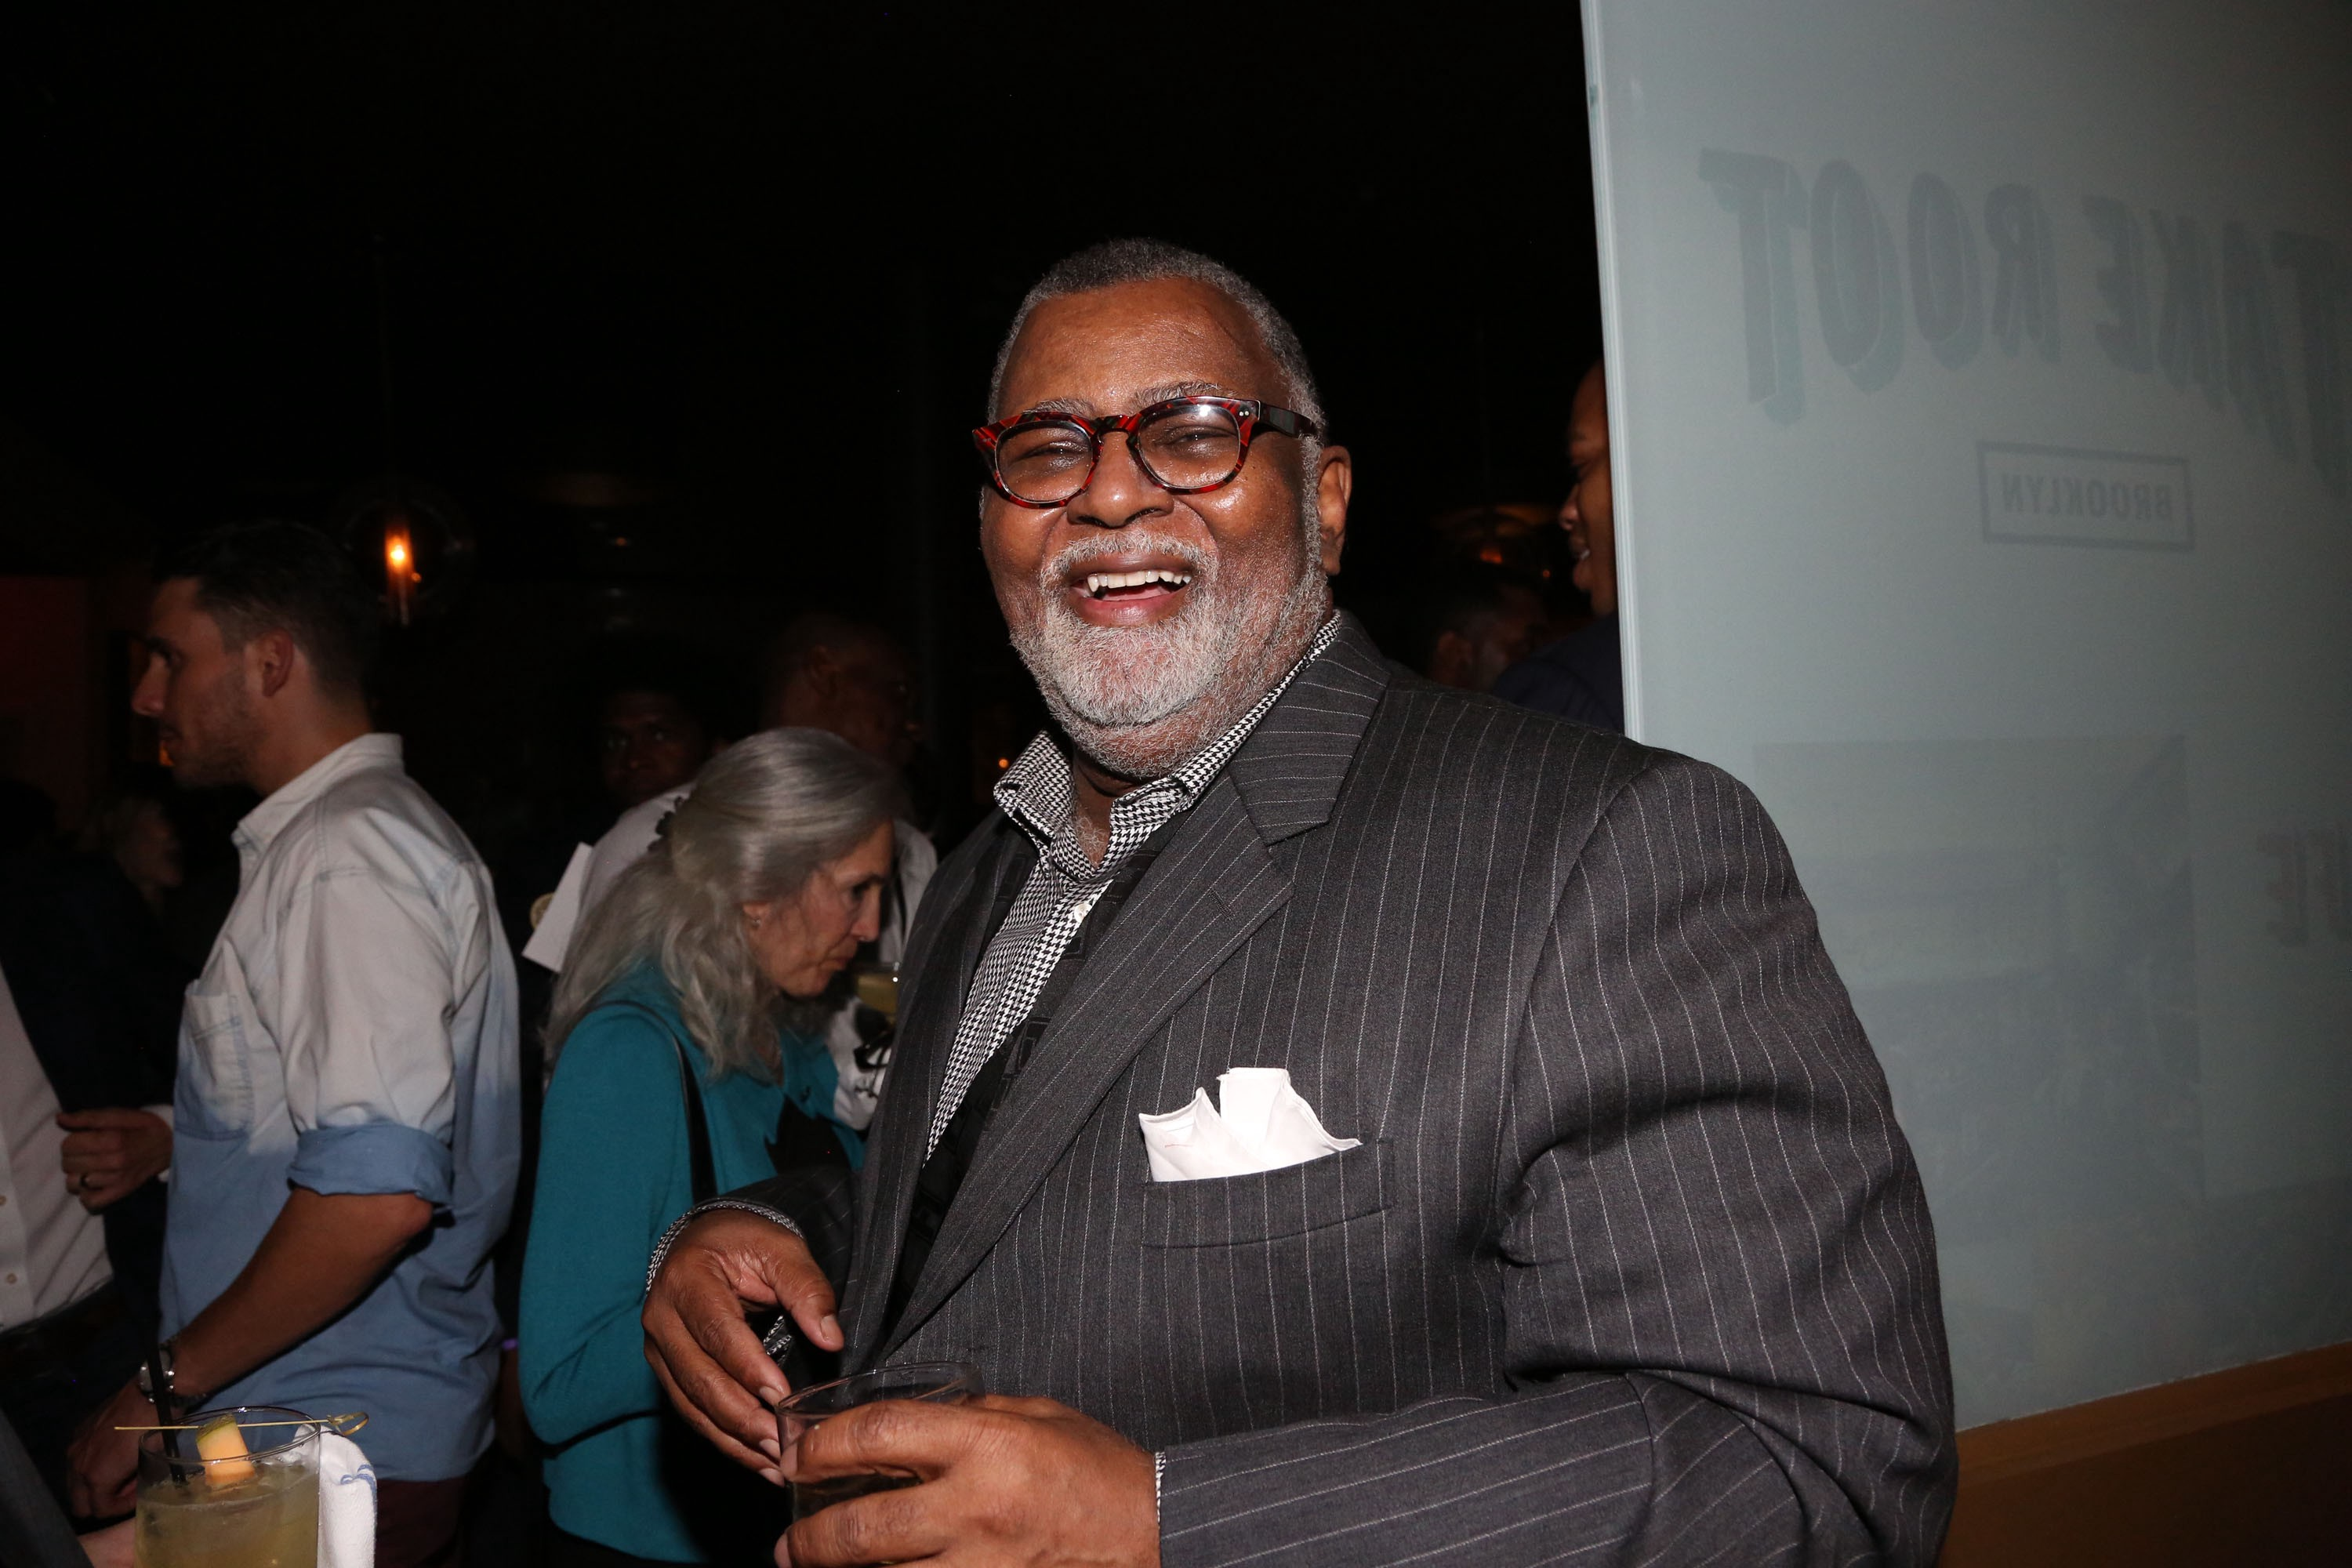 Alexander Smalls smiles for the camera at an event.